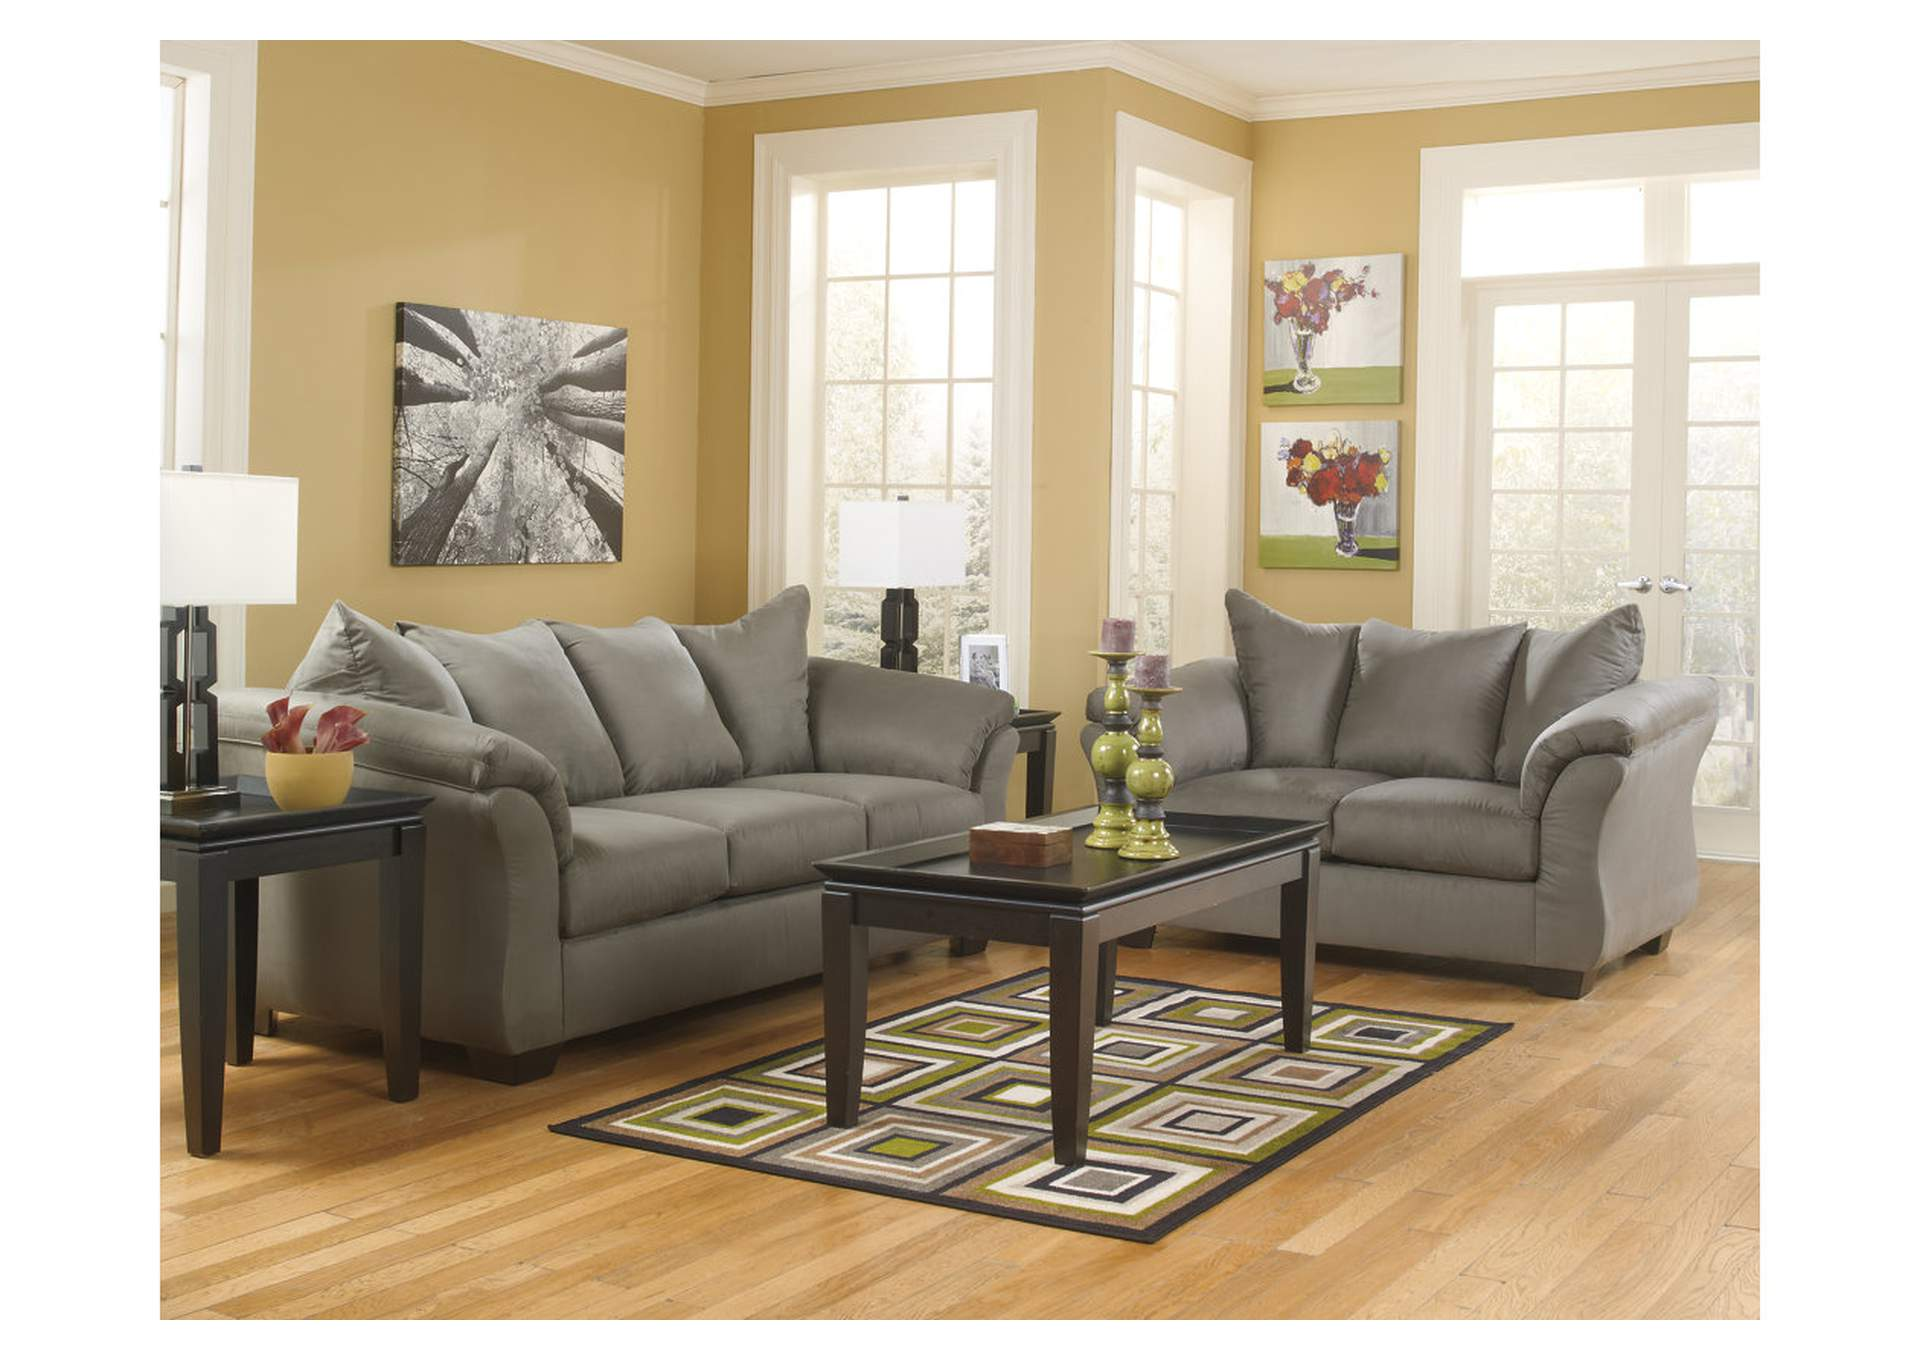 Darcy Cobblestone Sofa  & Loveseat,ABF Signature Design by Ashley